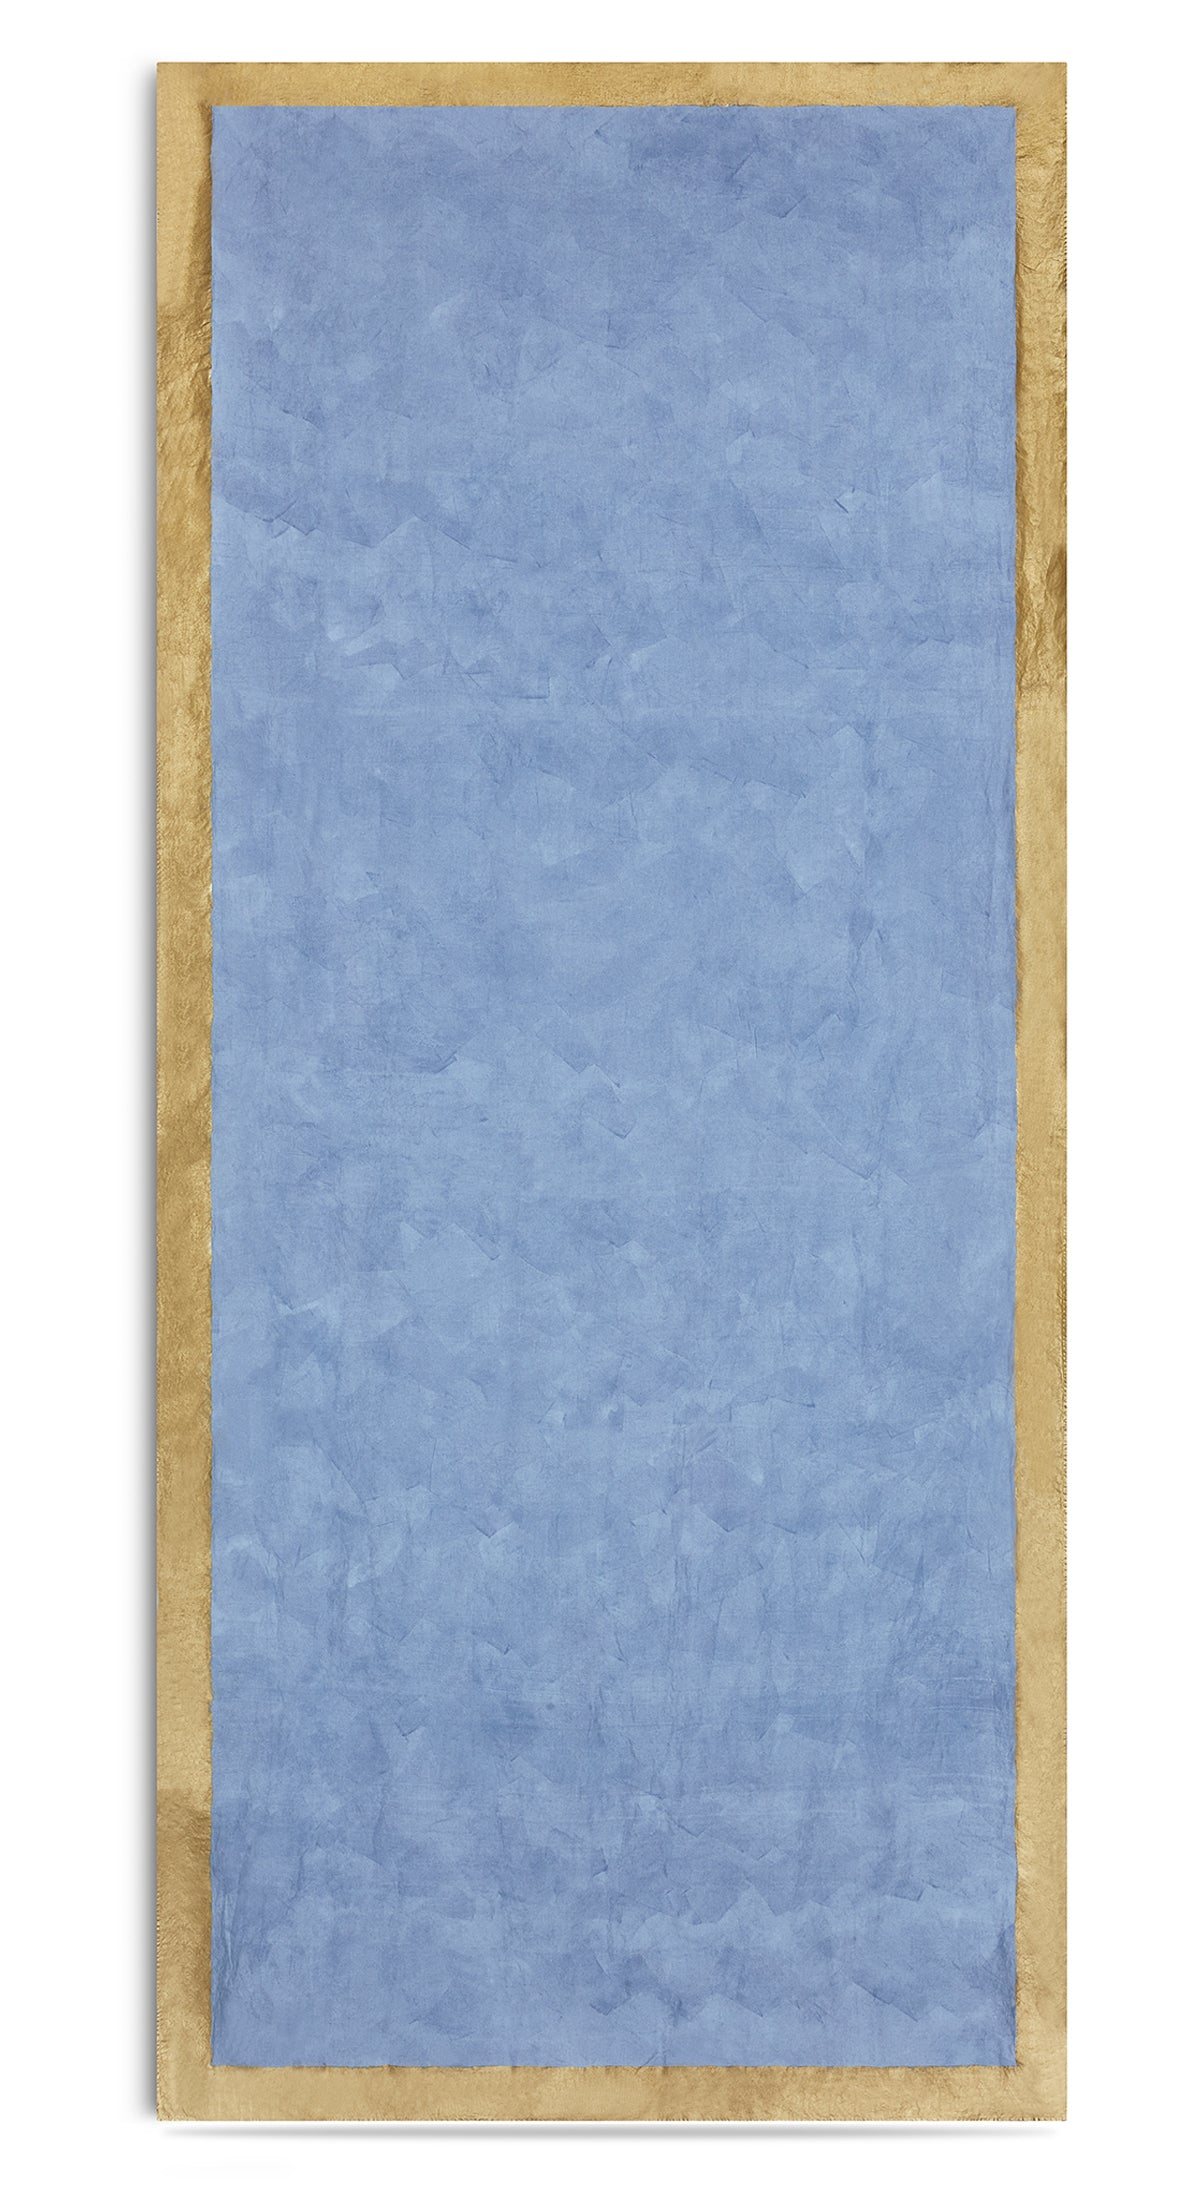 Gold Edge Linen Tablecloth in Pale Blue